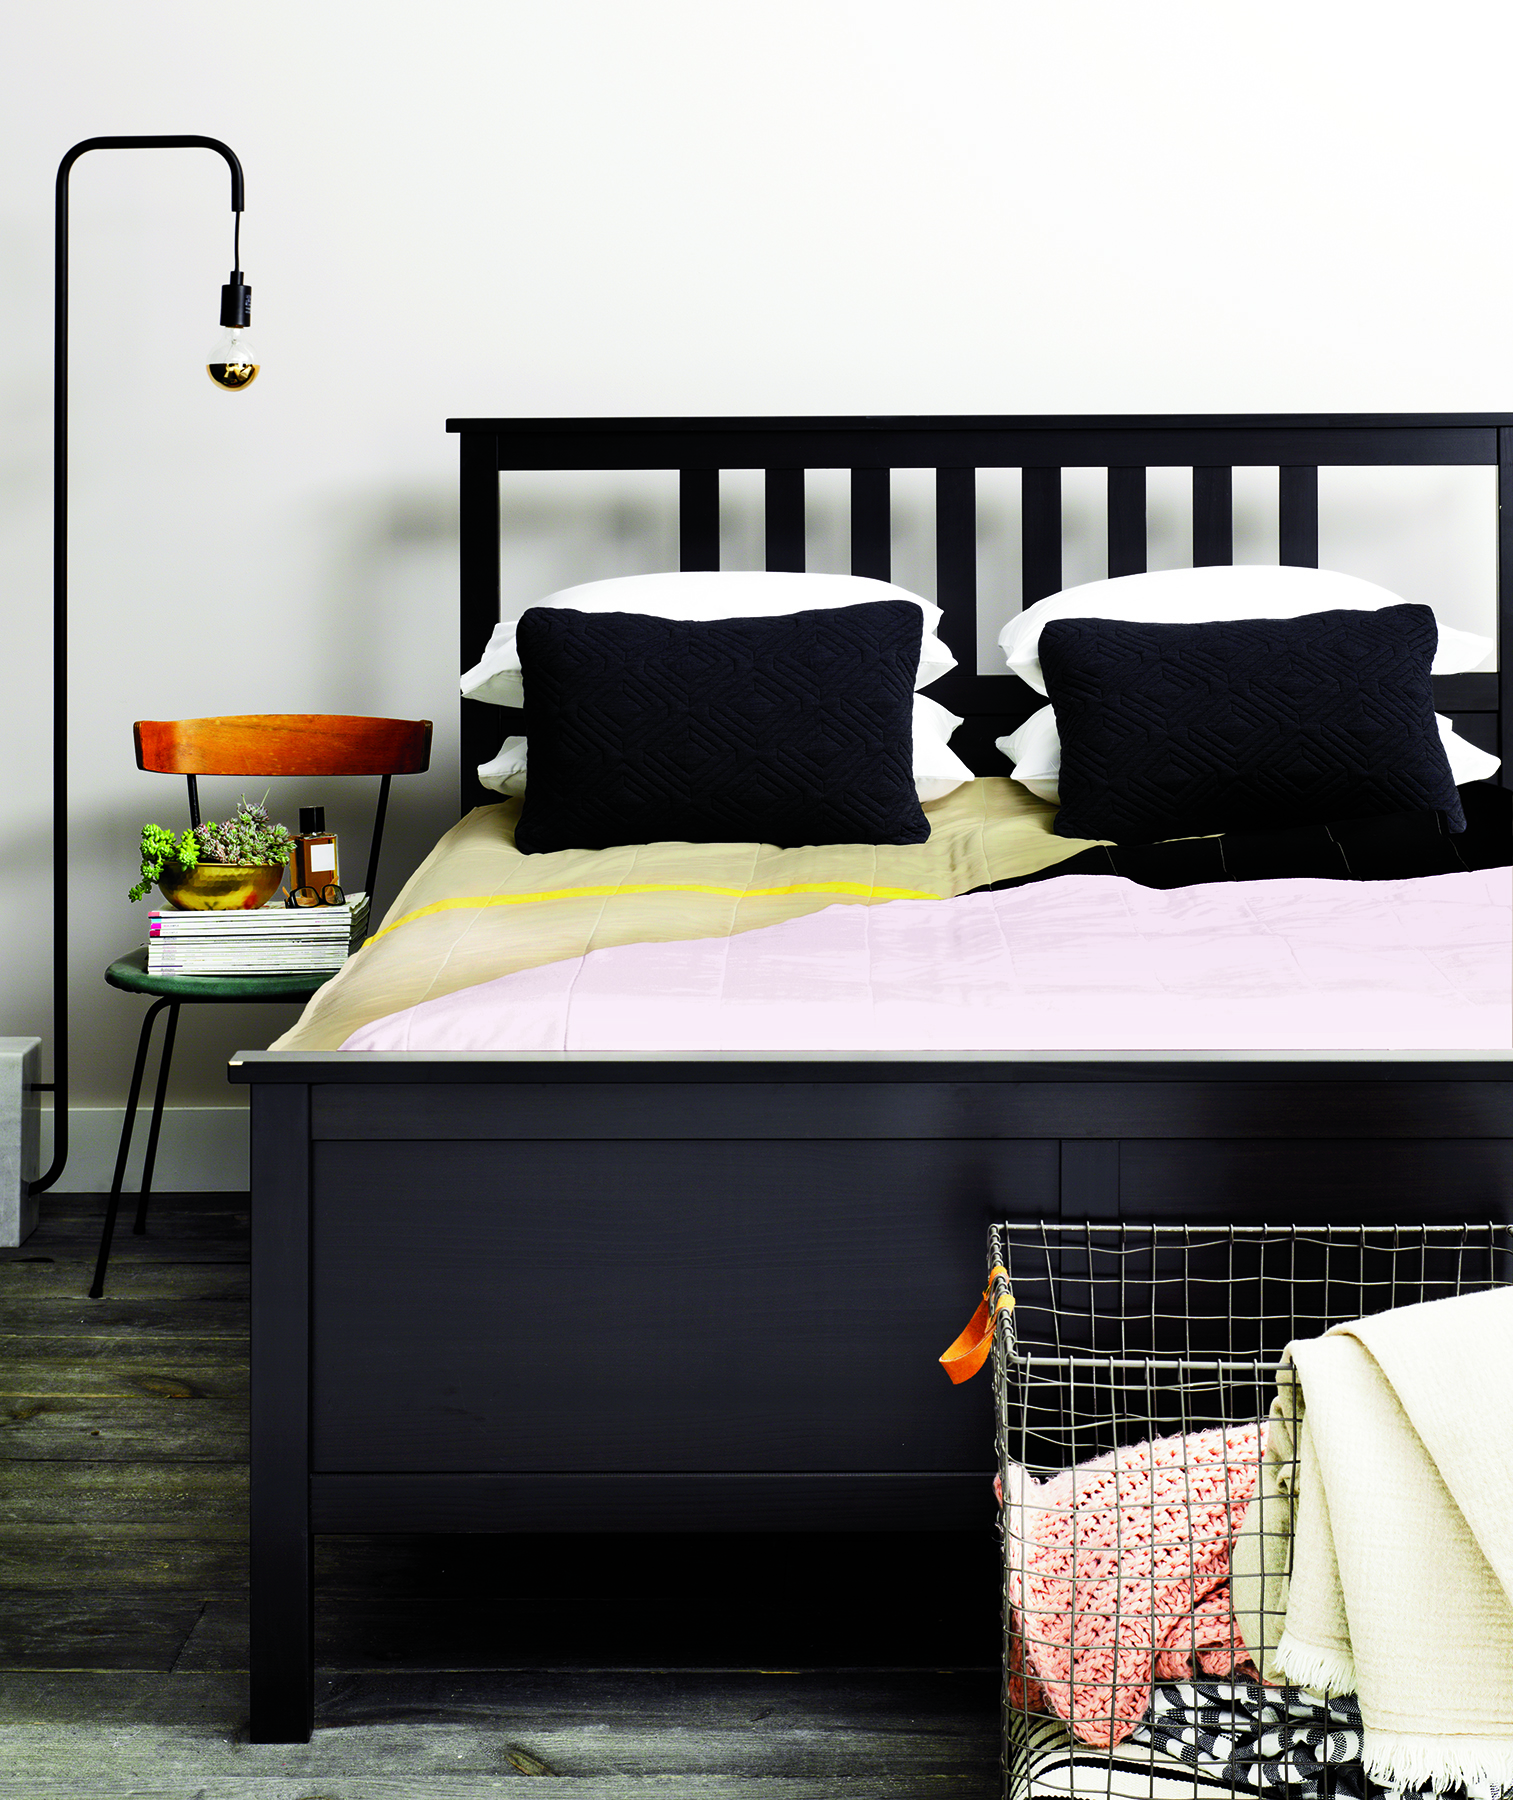 Bed with black and white graphic style